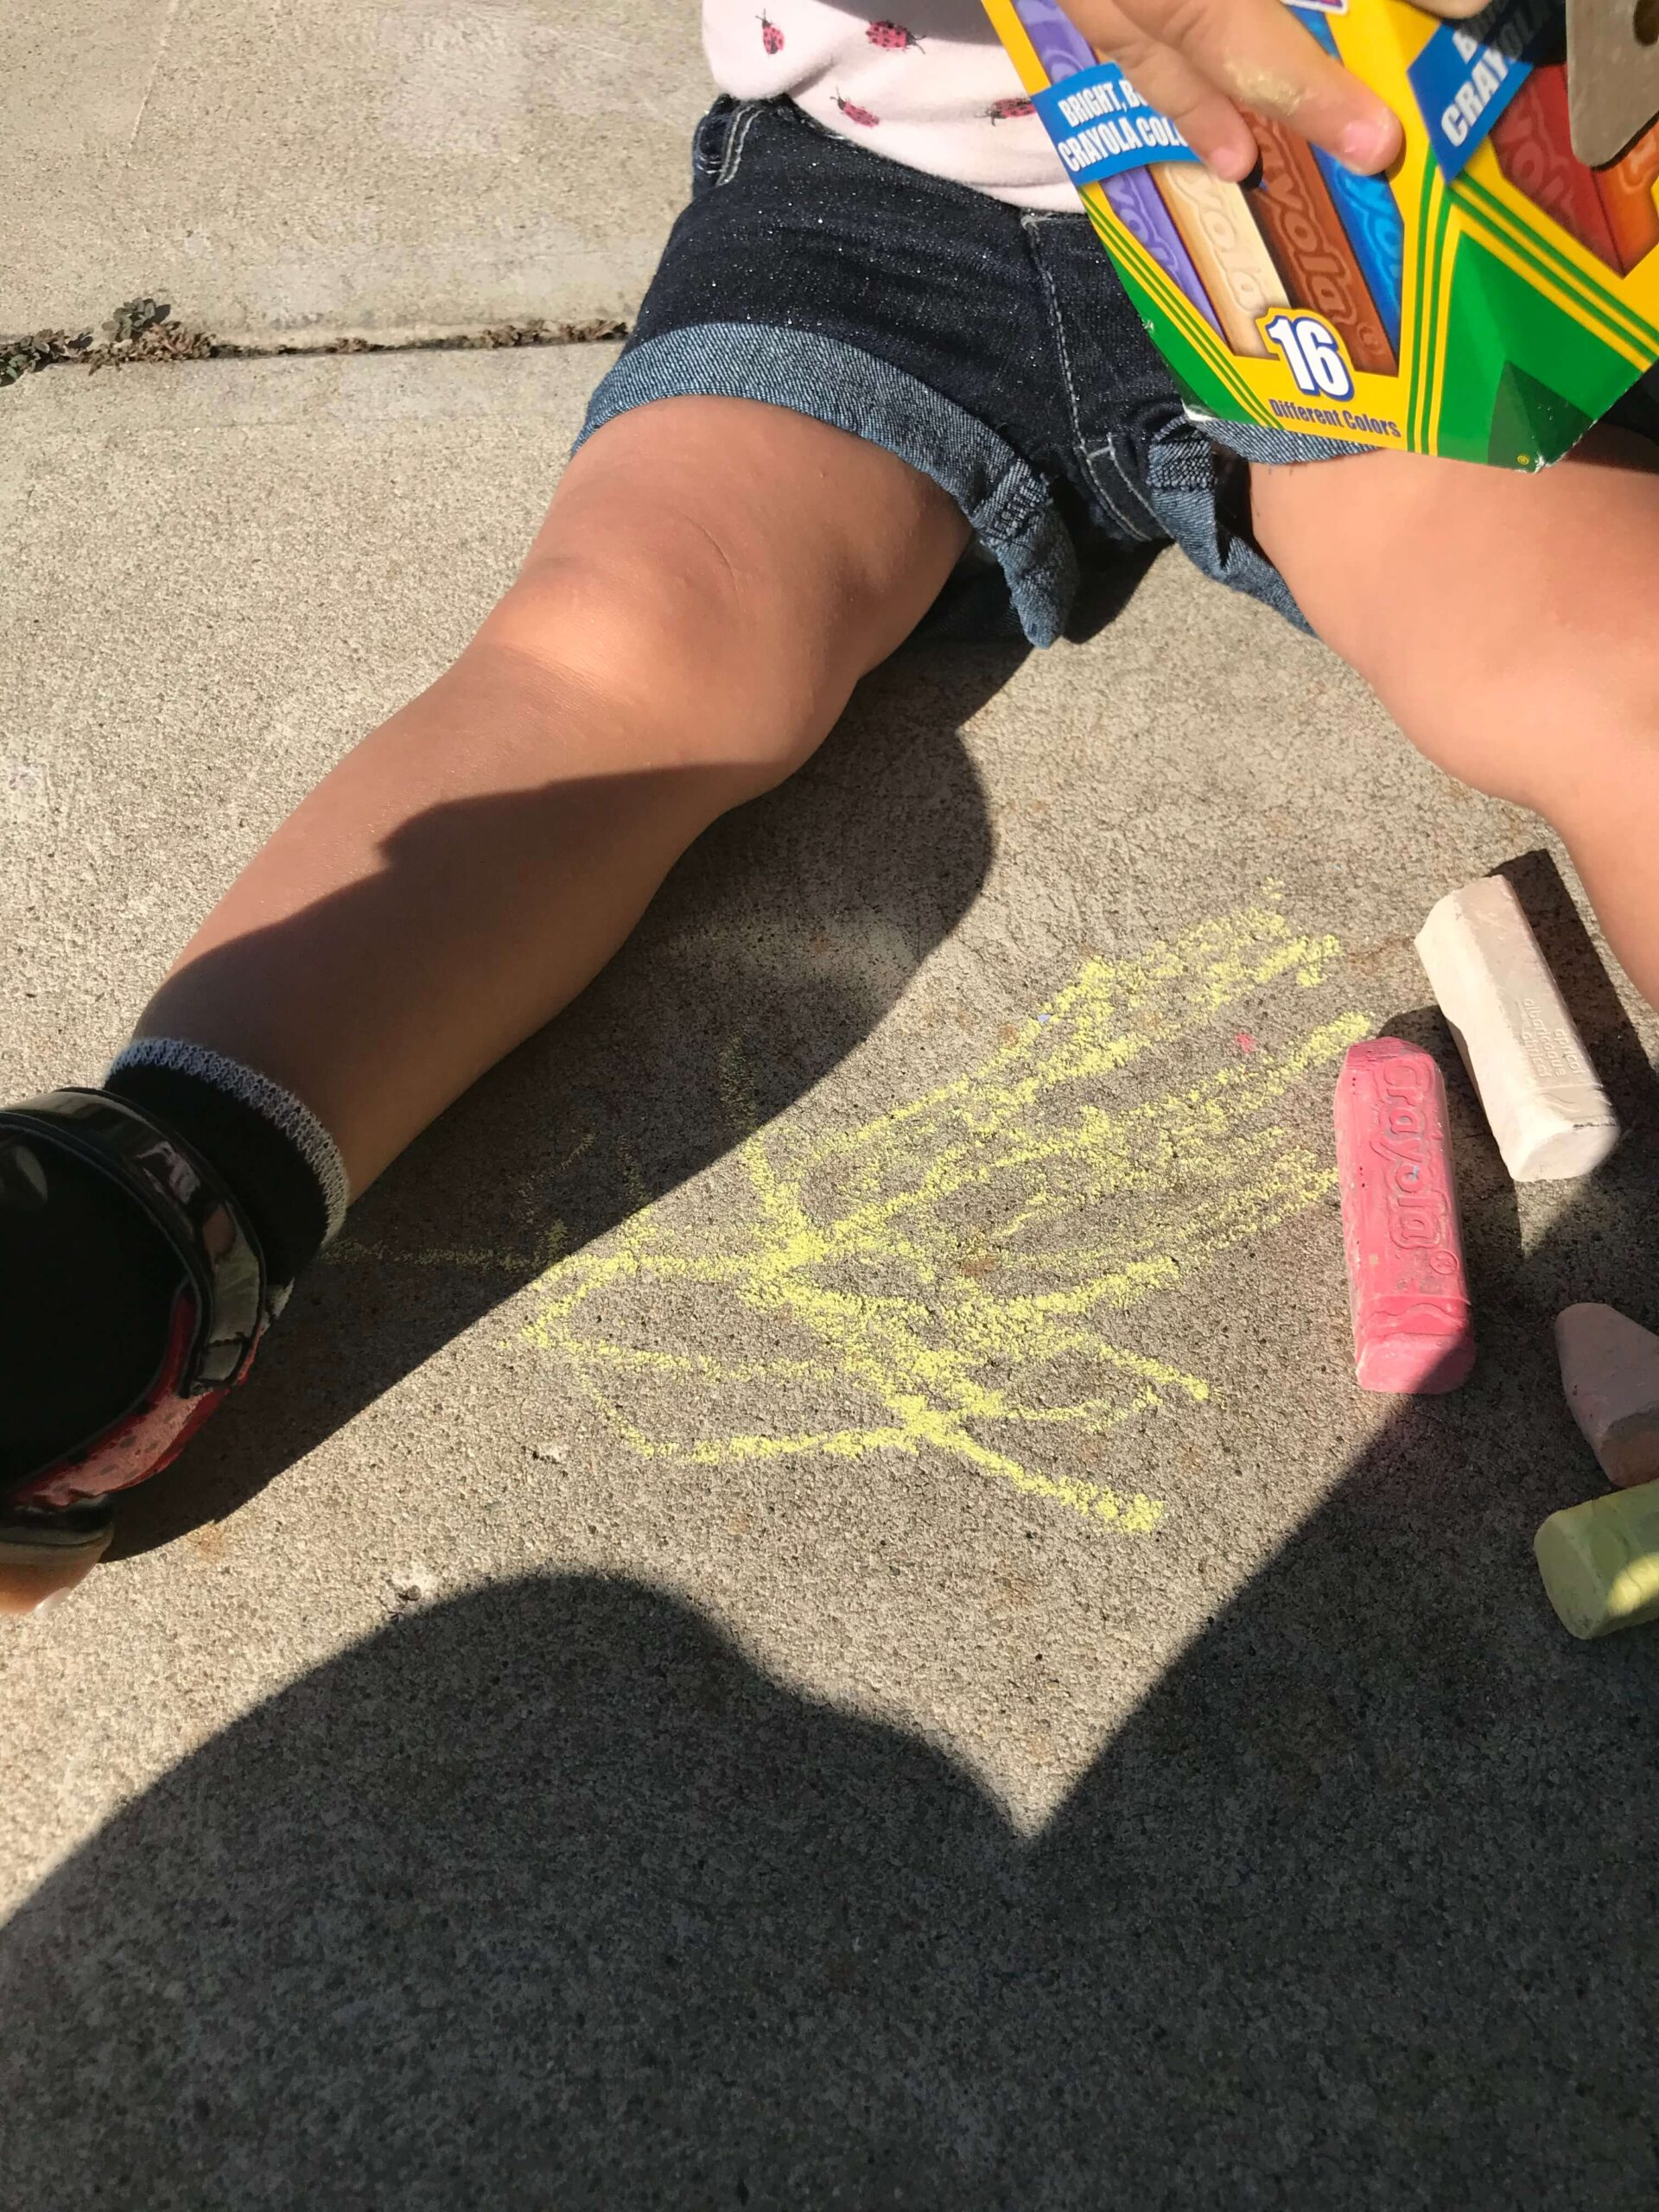 pieces of chalk with chalk drawing on sidewalk in between toddler legs